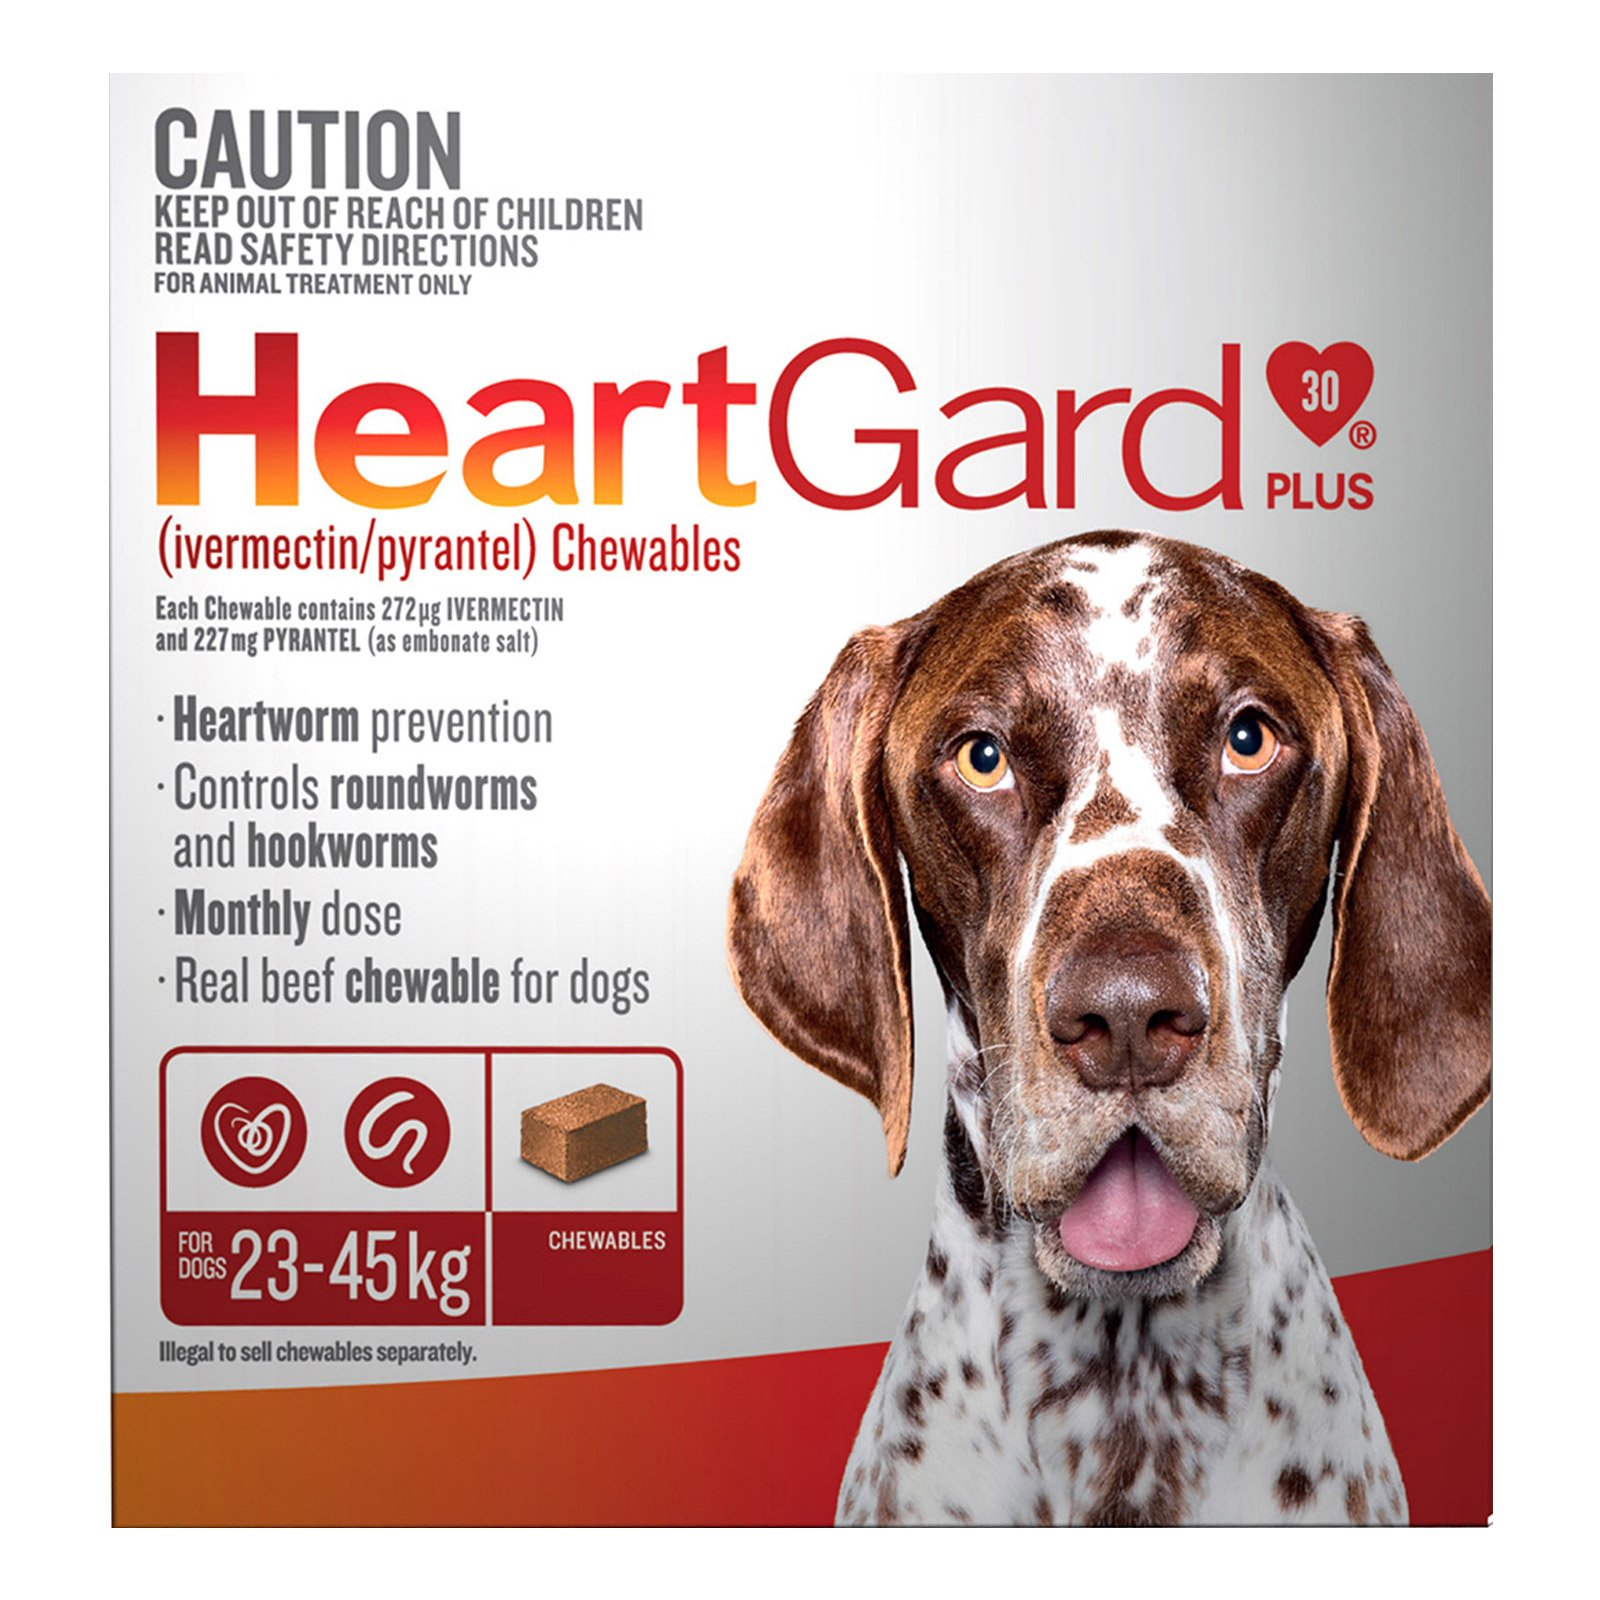 heartgard-plus-chewables-heartguard-for-large-dog-23-to-45-kg-brown.jpg